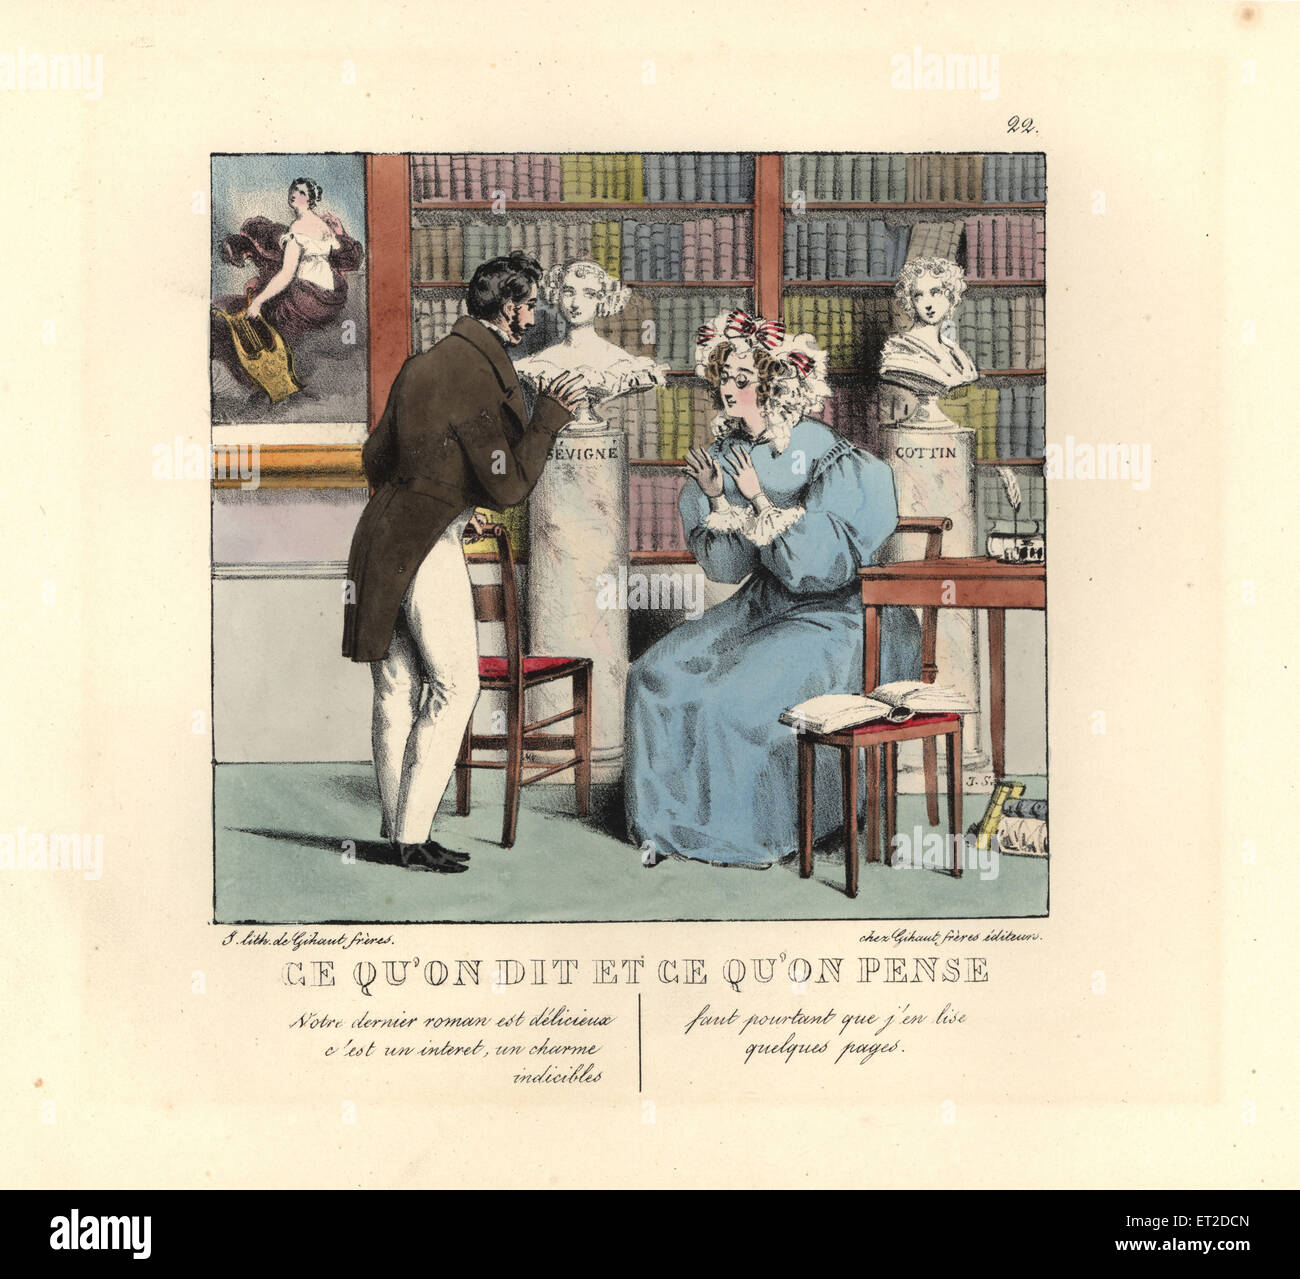 Bookish woman in a library talking to an author. She says, Your last novel is delicious with an indescribable charm. - Stock Image